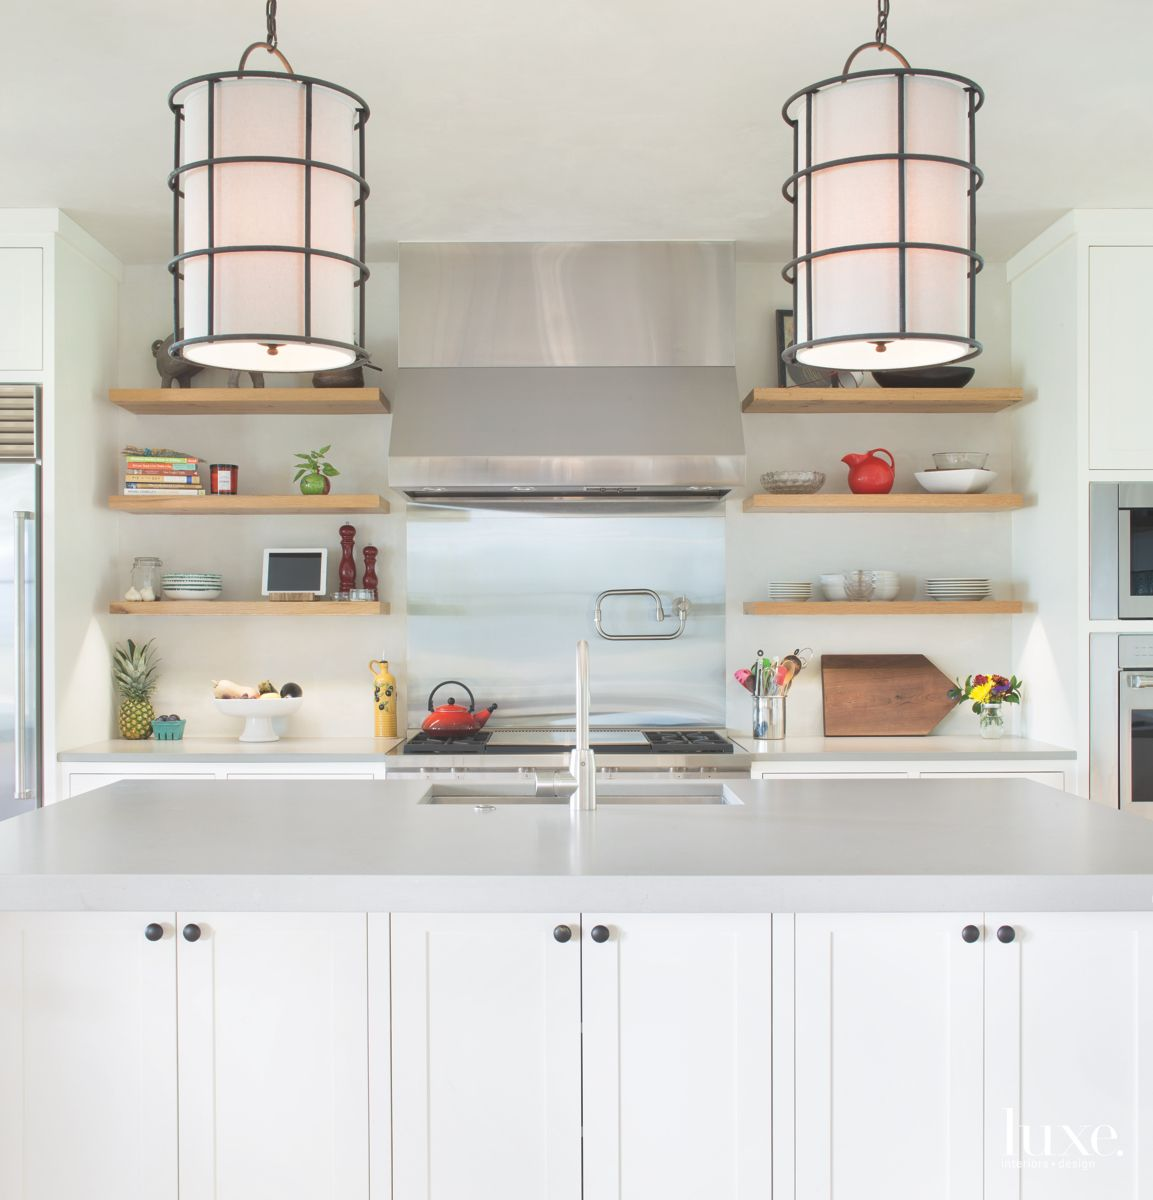 Lantern Lighting Kitchen Kitchen with Wooden Shelving and Cabinet Island